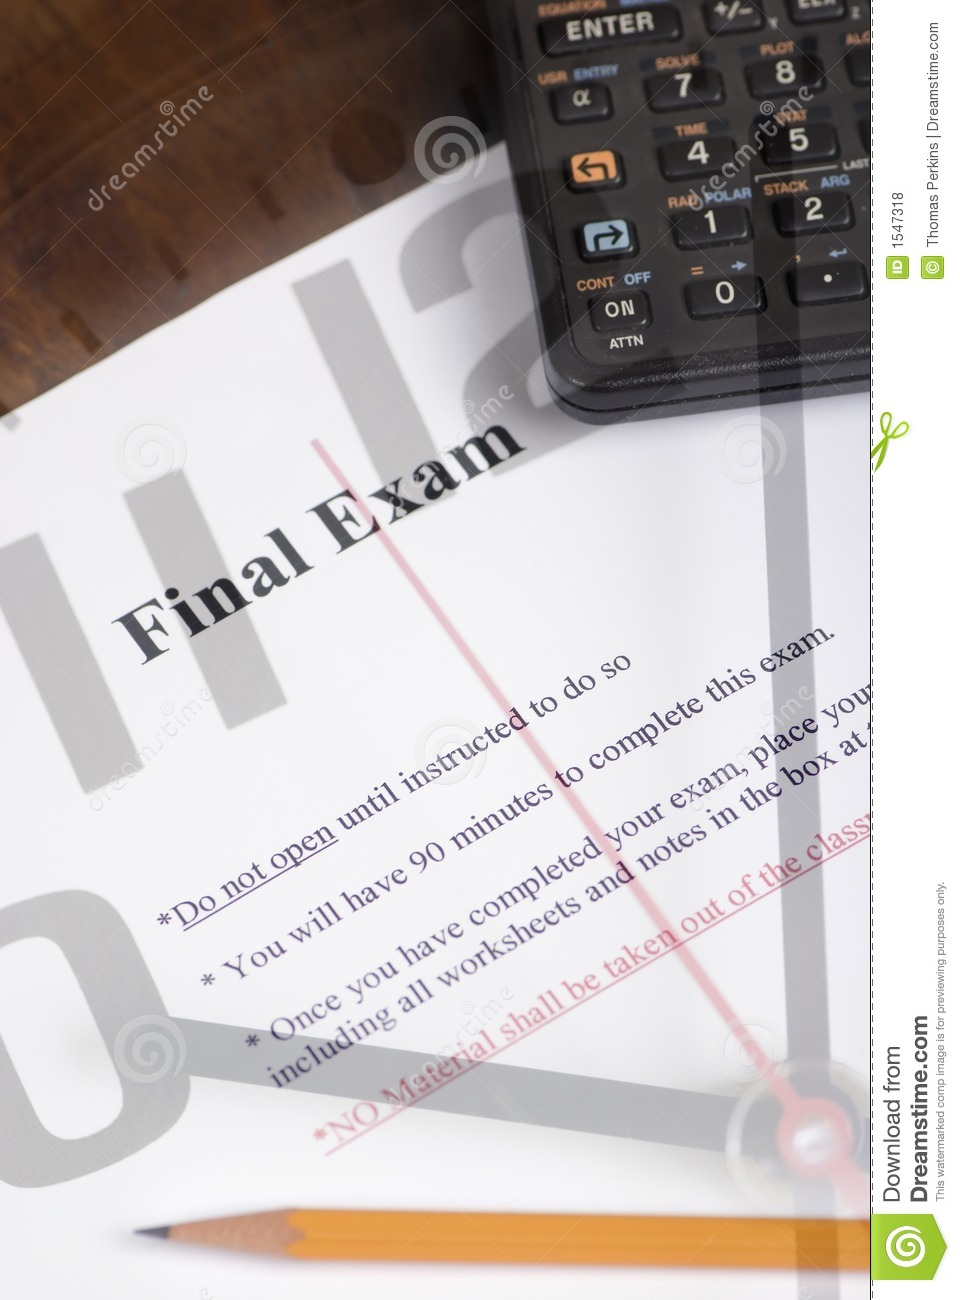 business final exam Grade 12 past exam papers – free downloads here is an excellent opportunity to get first hand experience of what to expect when you write your final examinations.